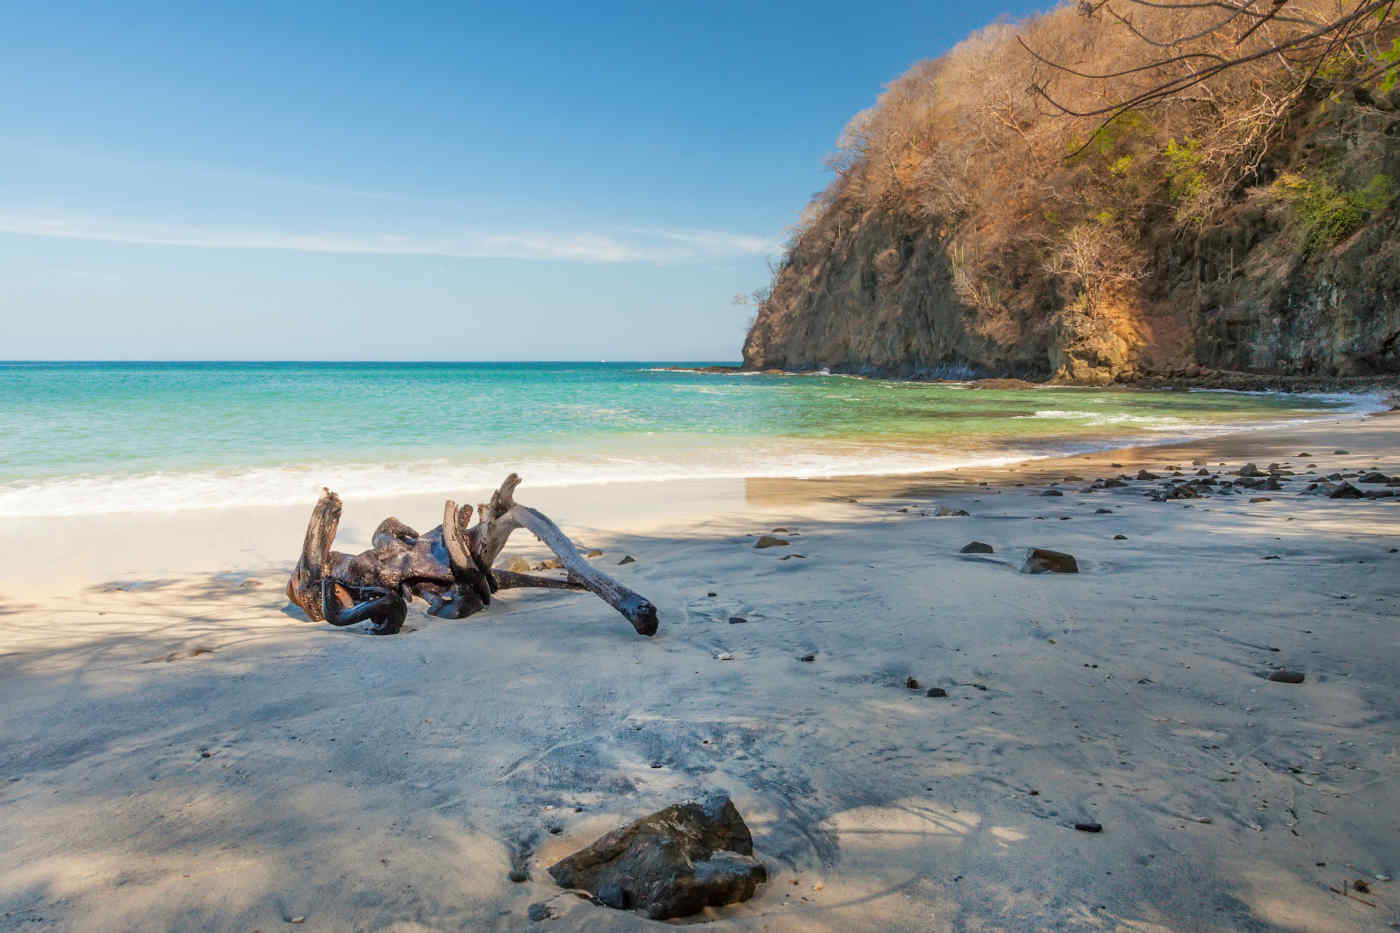 Gulf of Papagayo in Costa Rica • Guanacaste